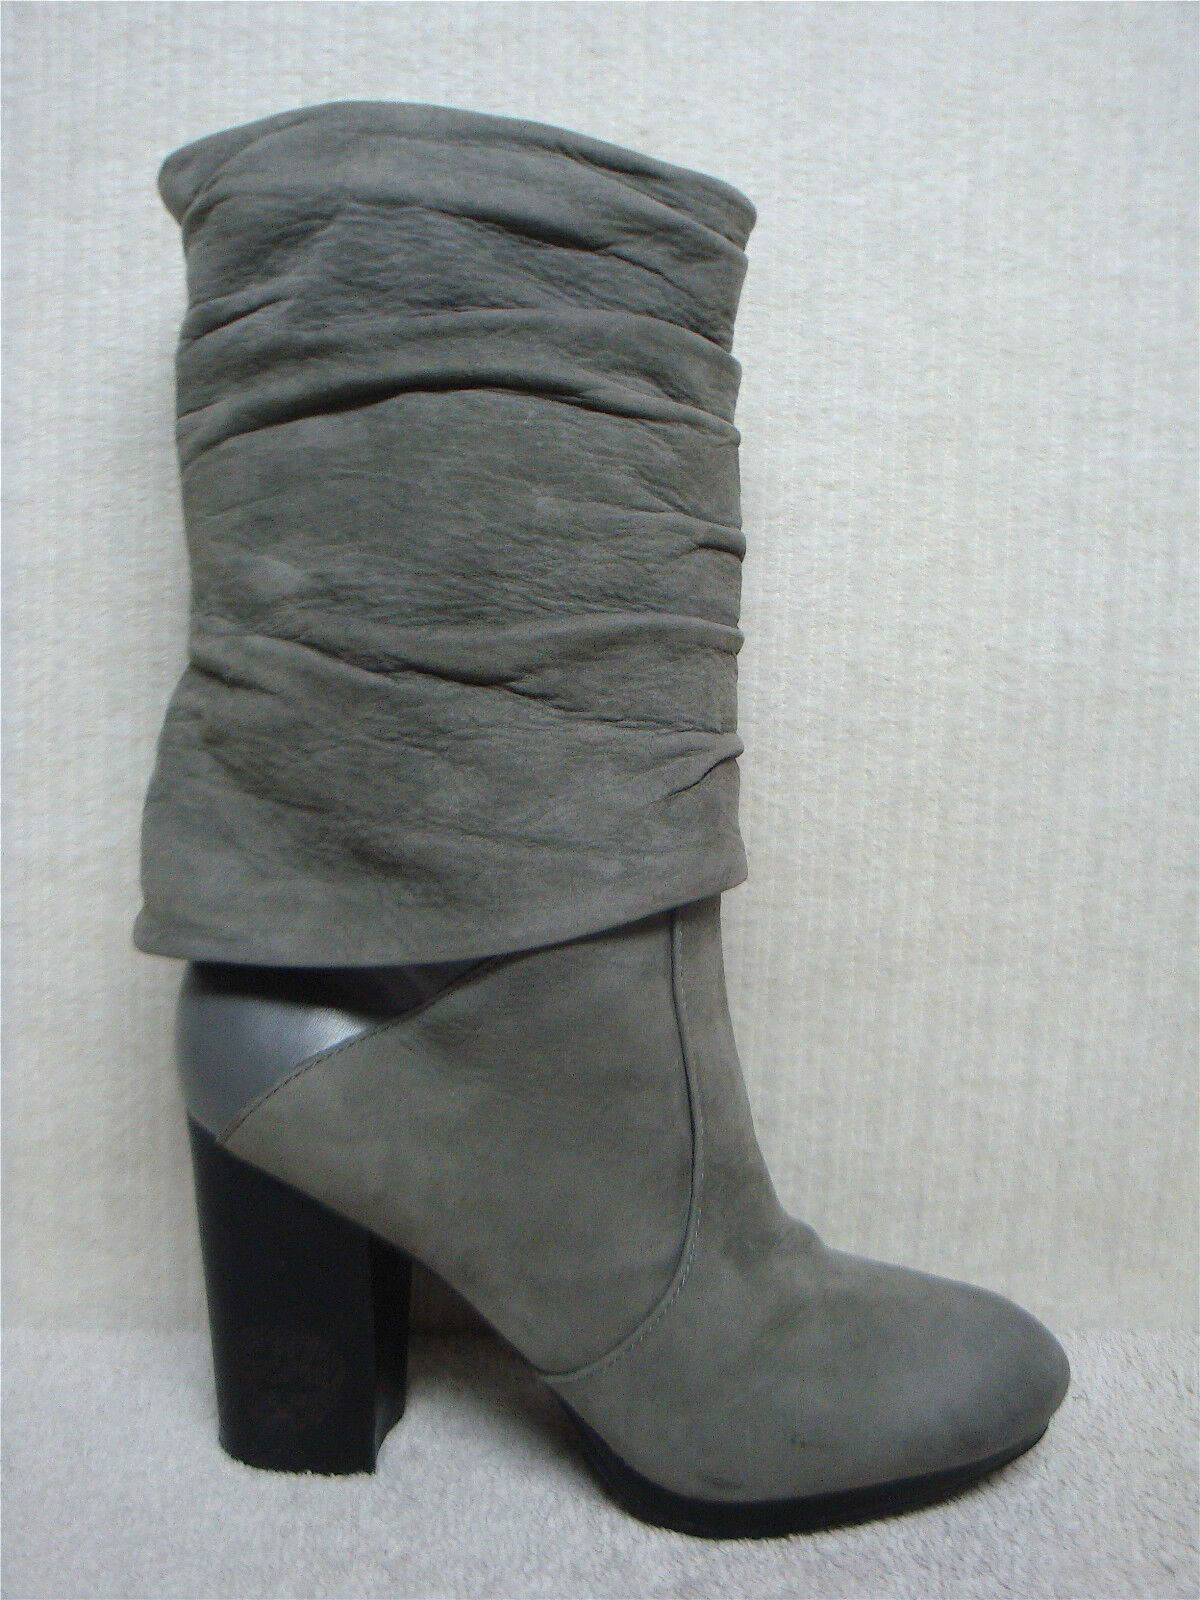 VINCE CAMUTO - CASSANDRA -Tumbled Leather Gray Fold Over Boots Heels -Size 9.5 M